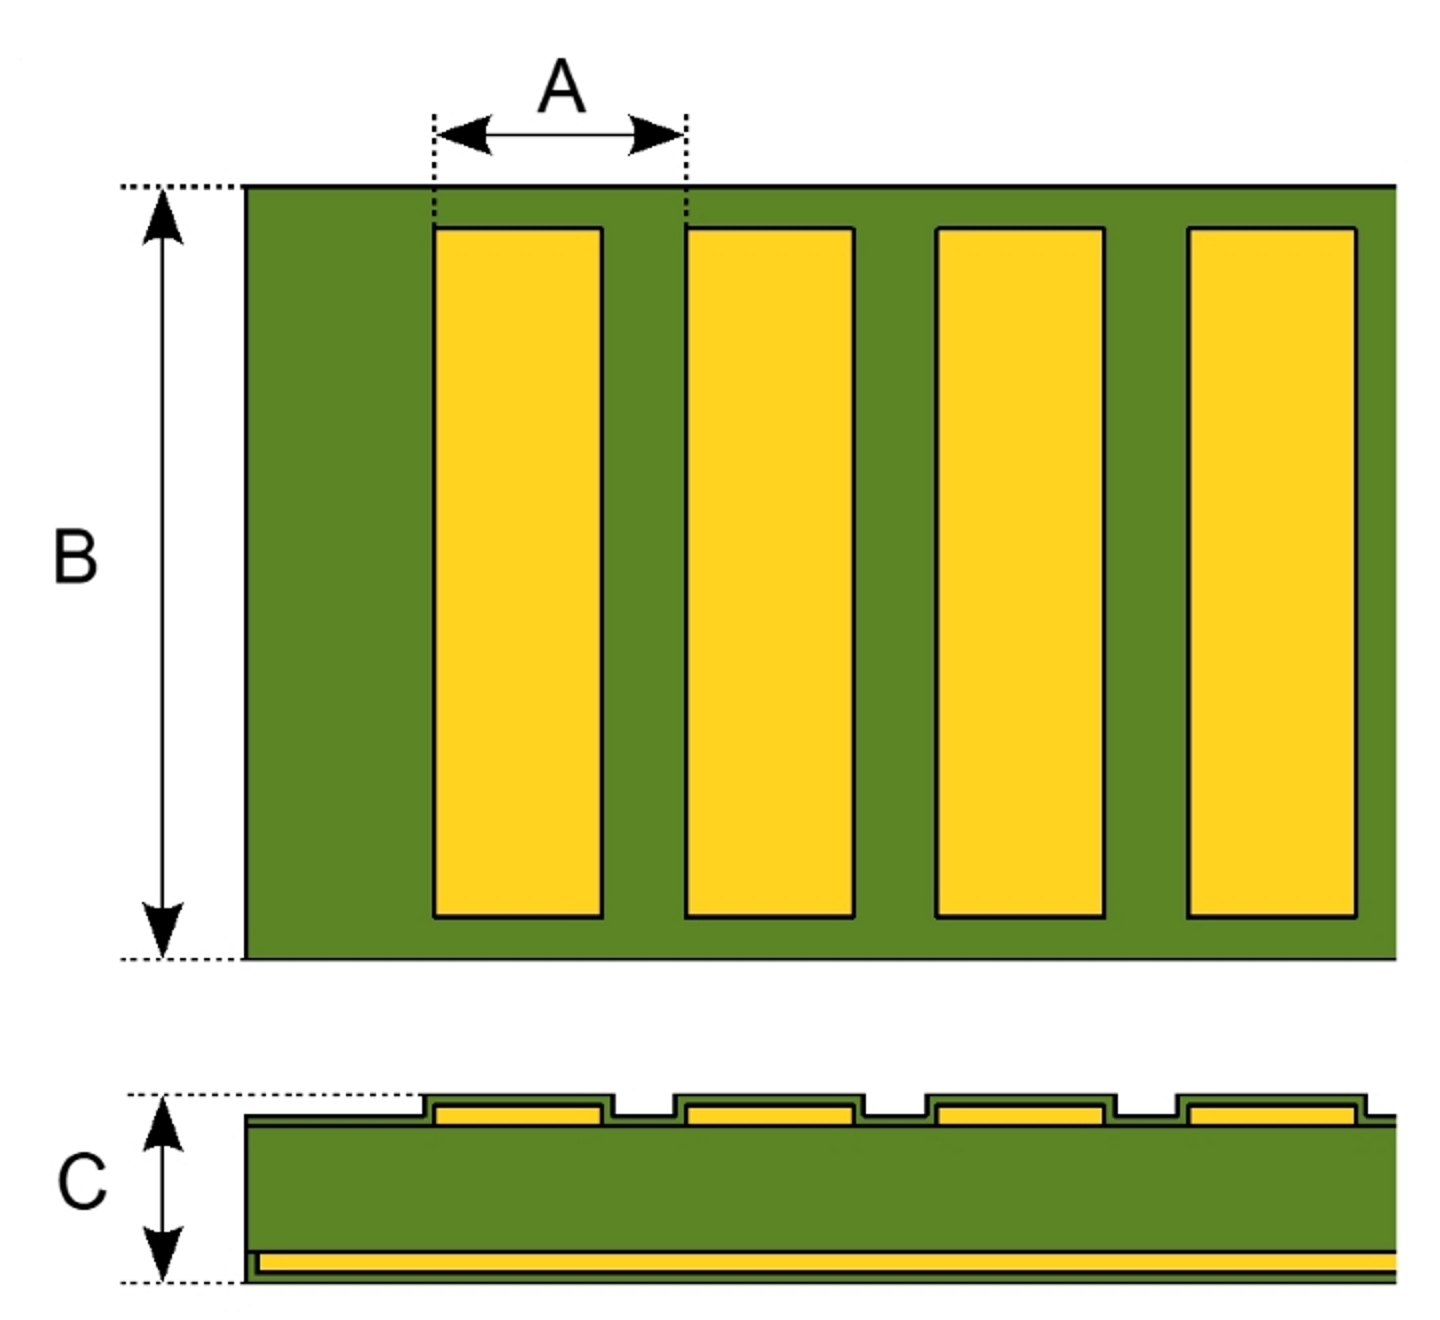 Linear scale with dimensions